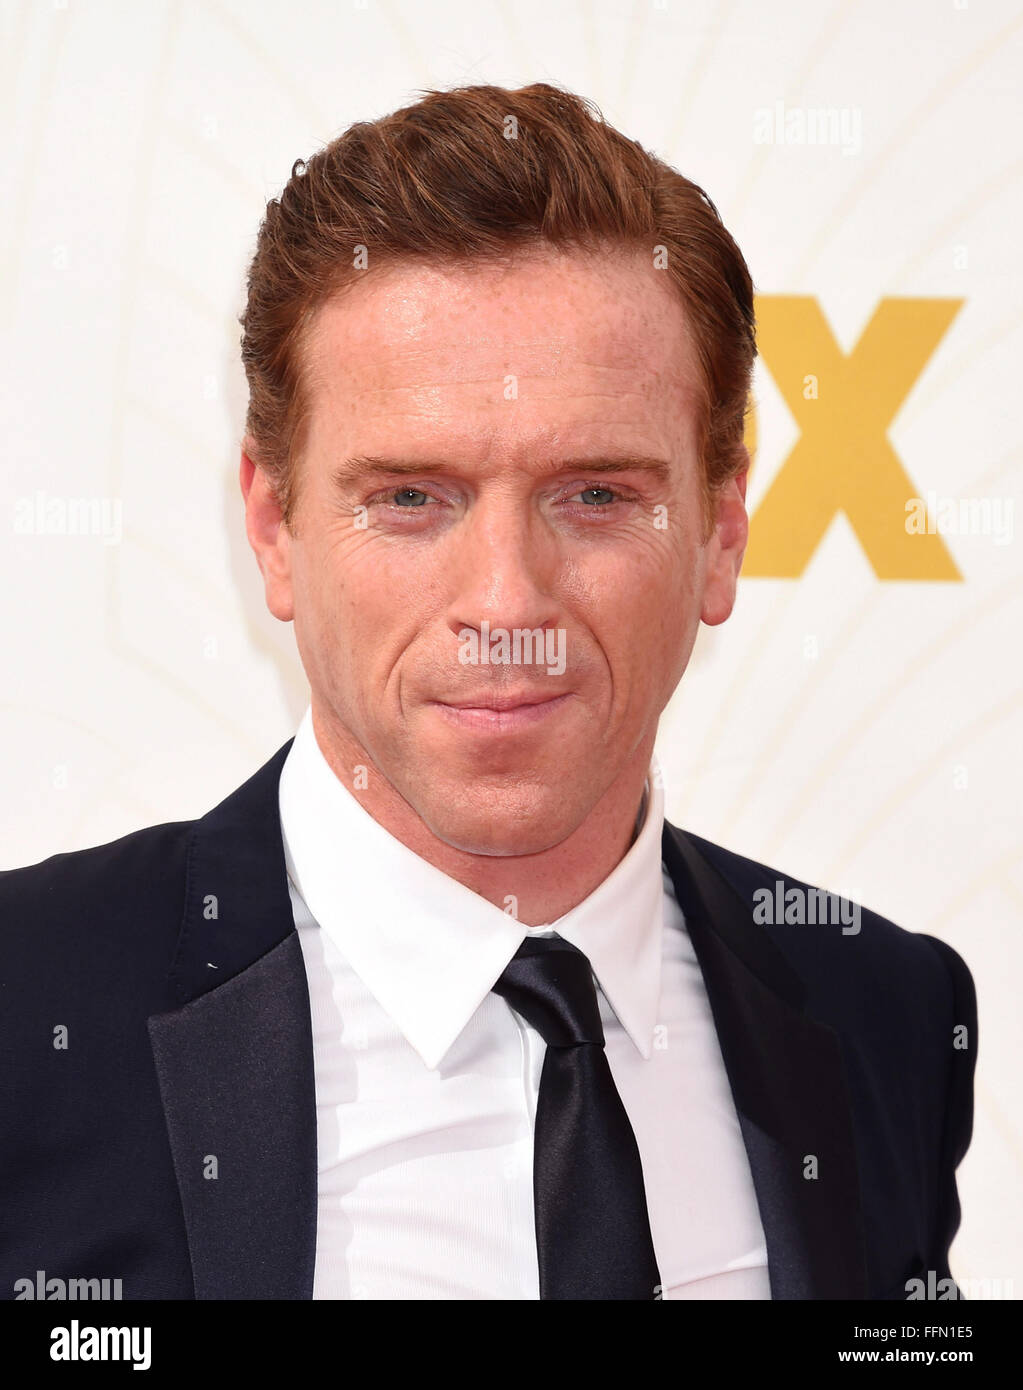 Actor Damian Lewis attends the 67th Annual Primetime Emmy Awards at Microsoft Theater on September 20, 2015 in Los - Stock Image